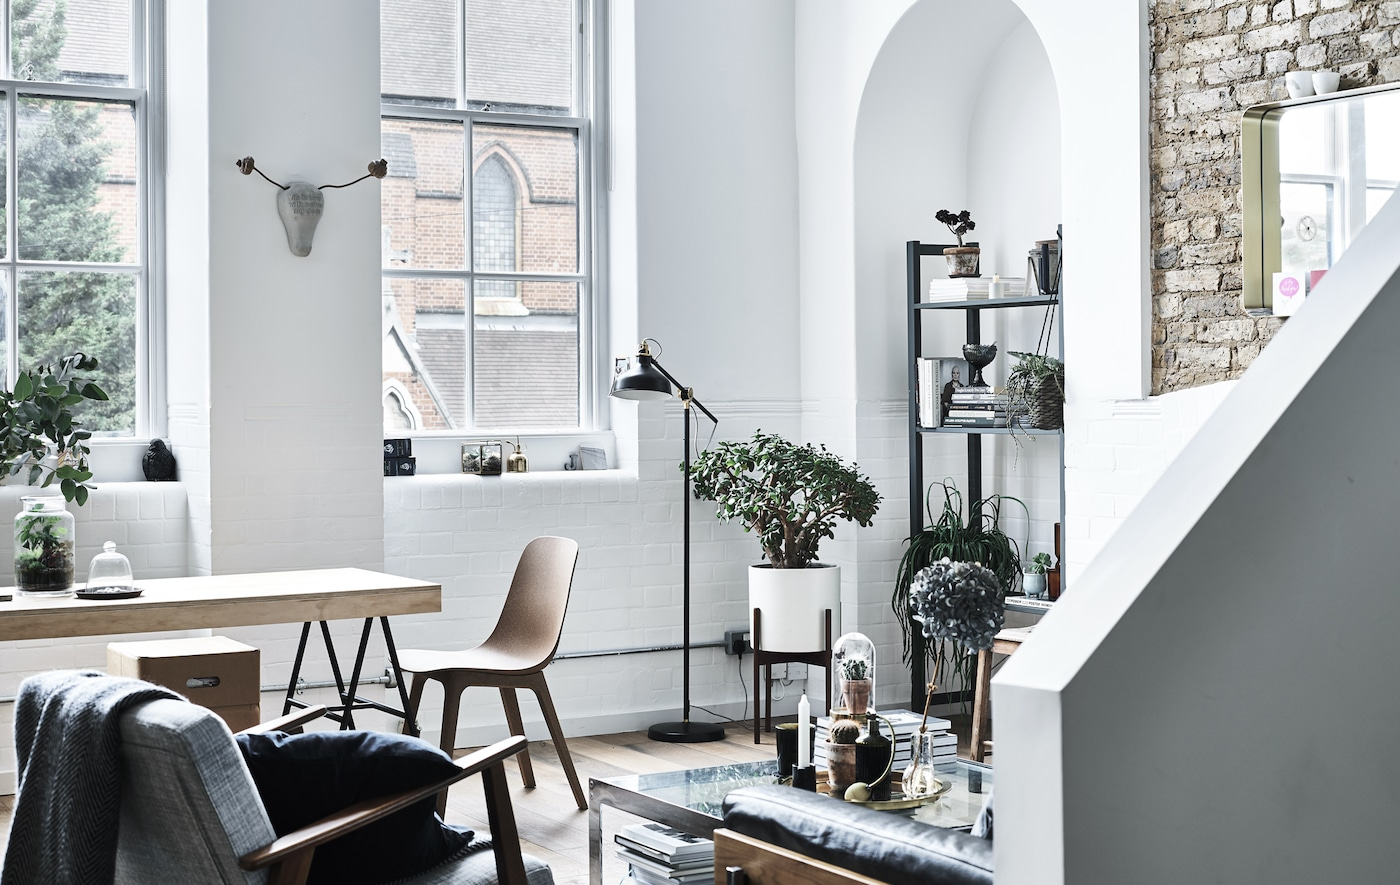 A living room and dining area with white walls in a converted apartment, in an old school.